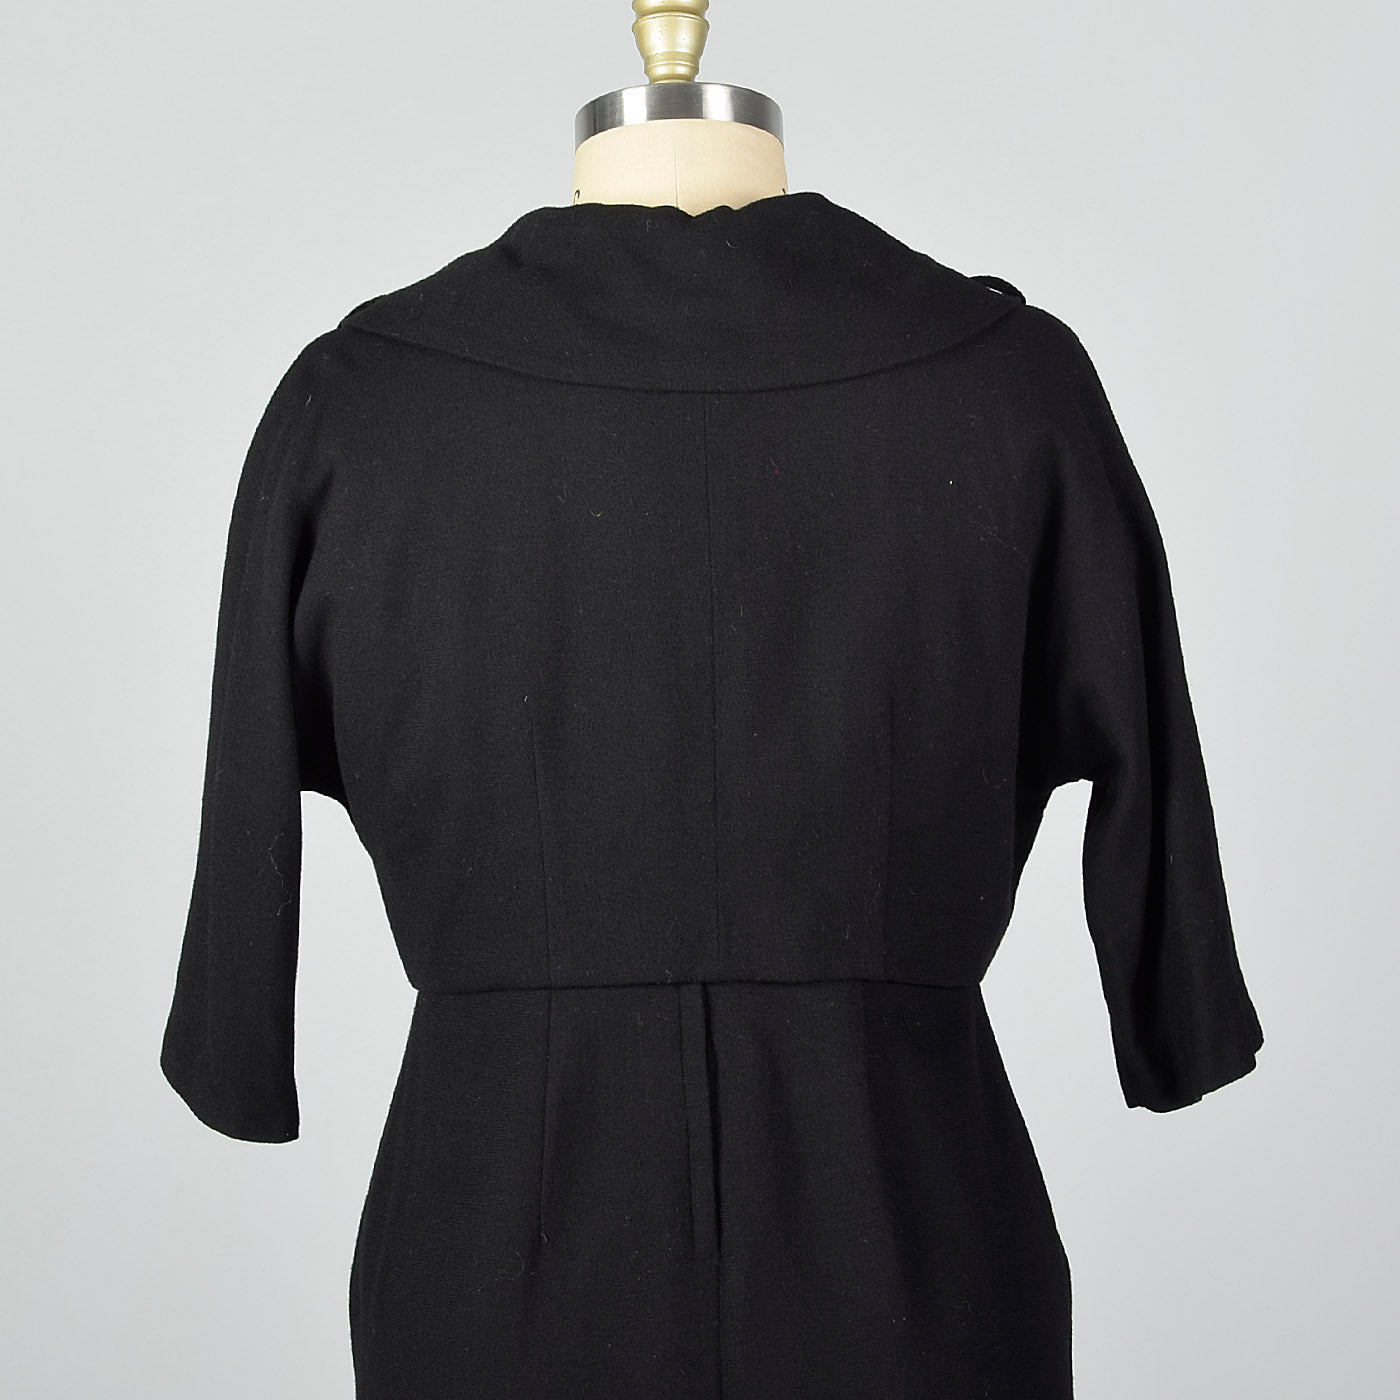 1950s Black Wool Dress and Jacket Set